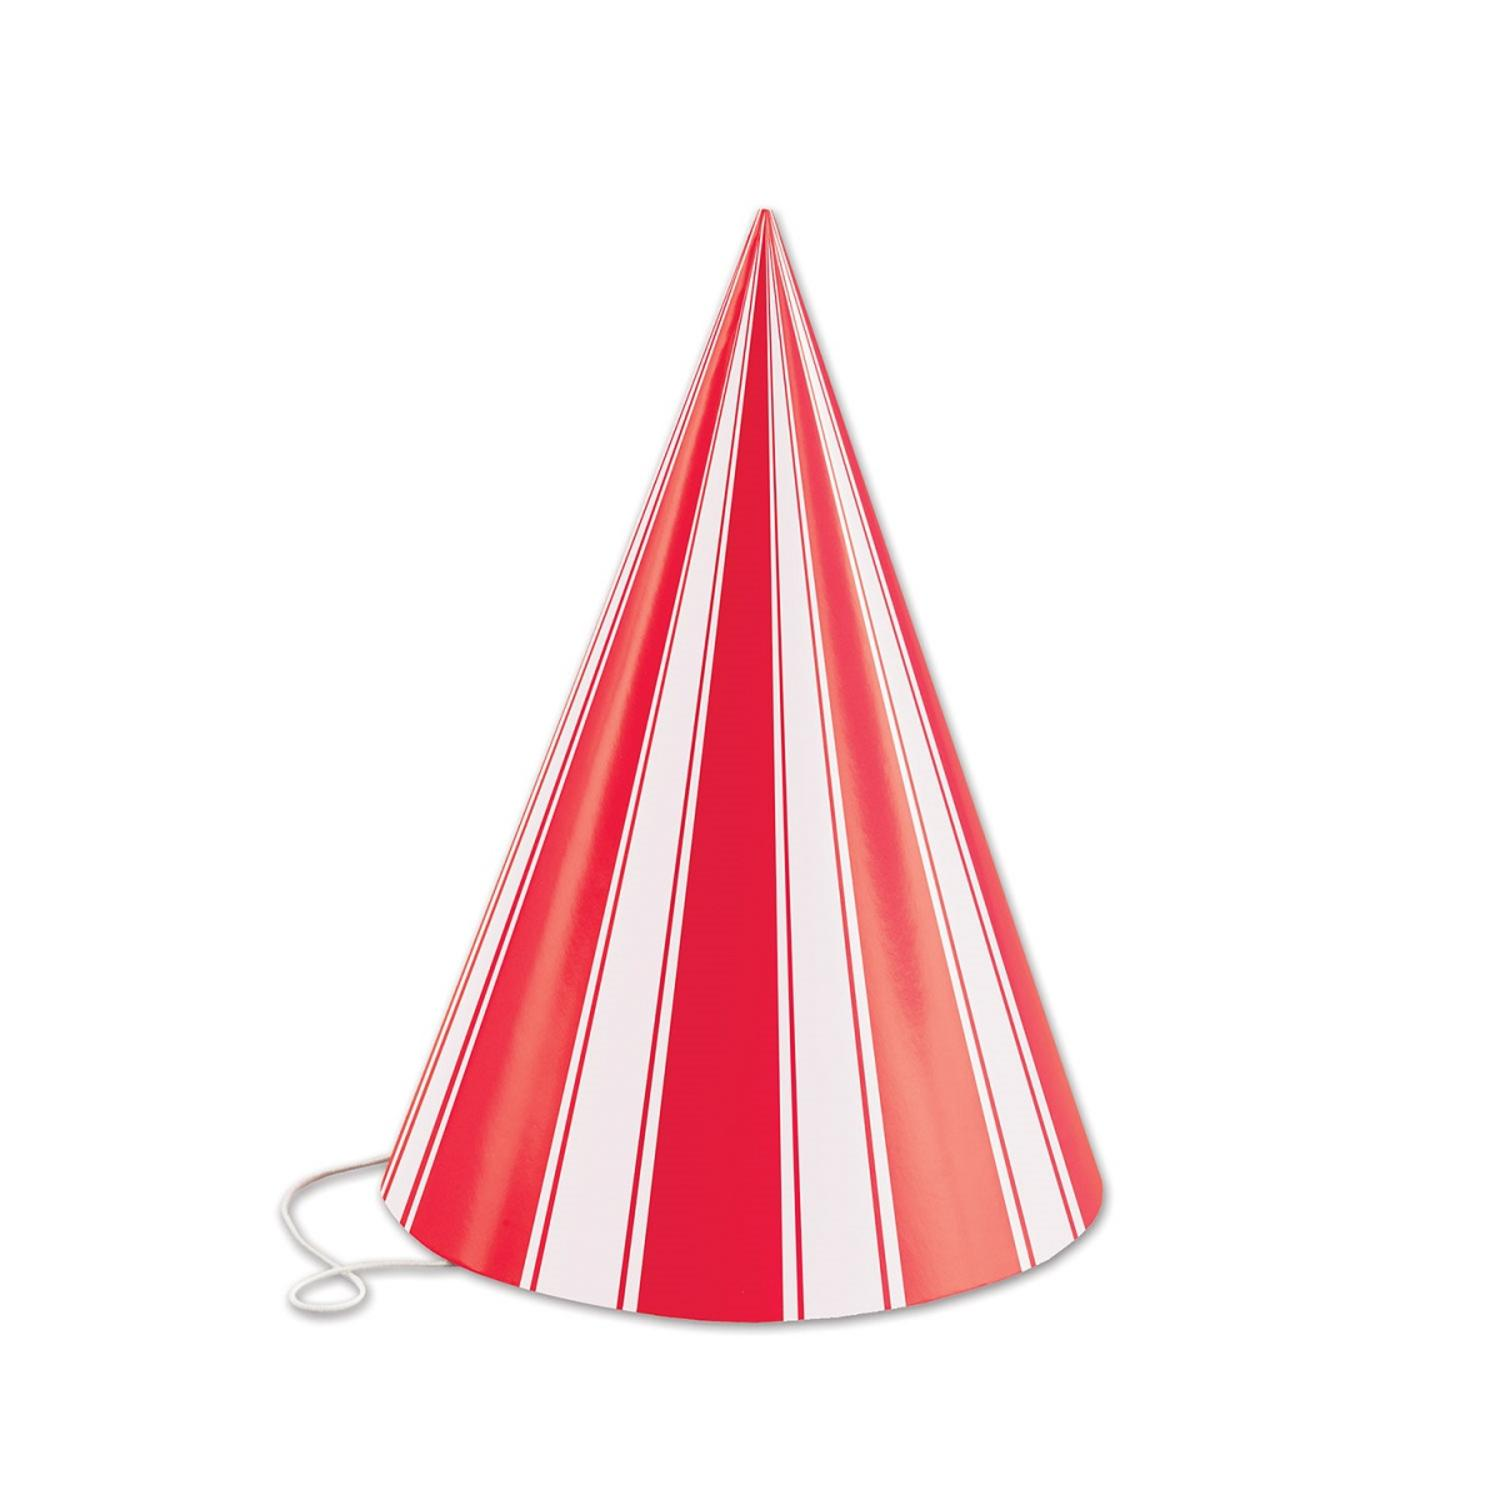 Club Pack of 144 Red and White Striped Fun and Festive Party Cone Hat 6.25